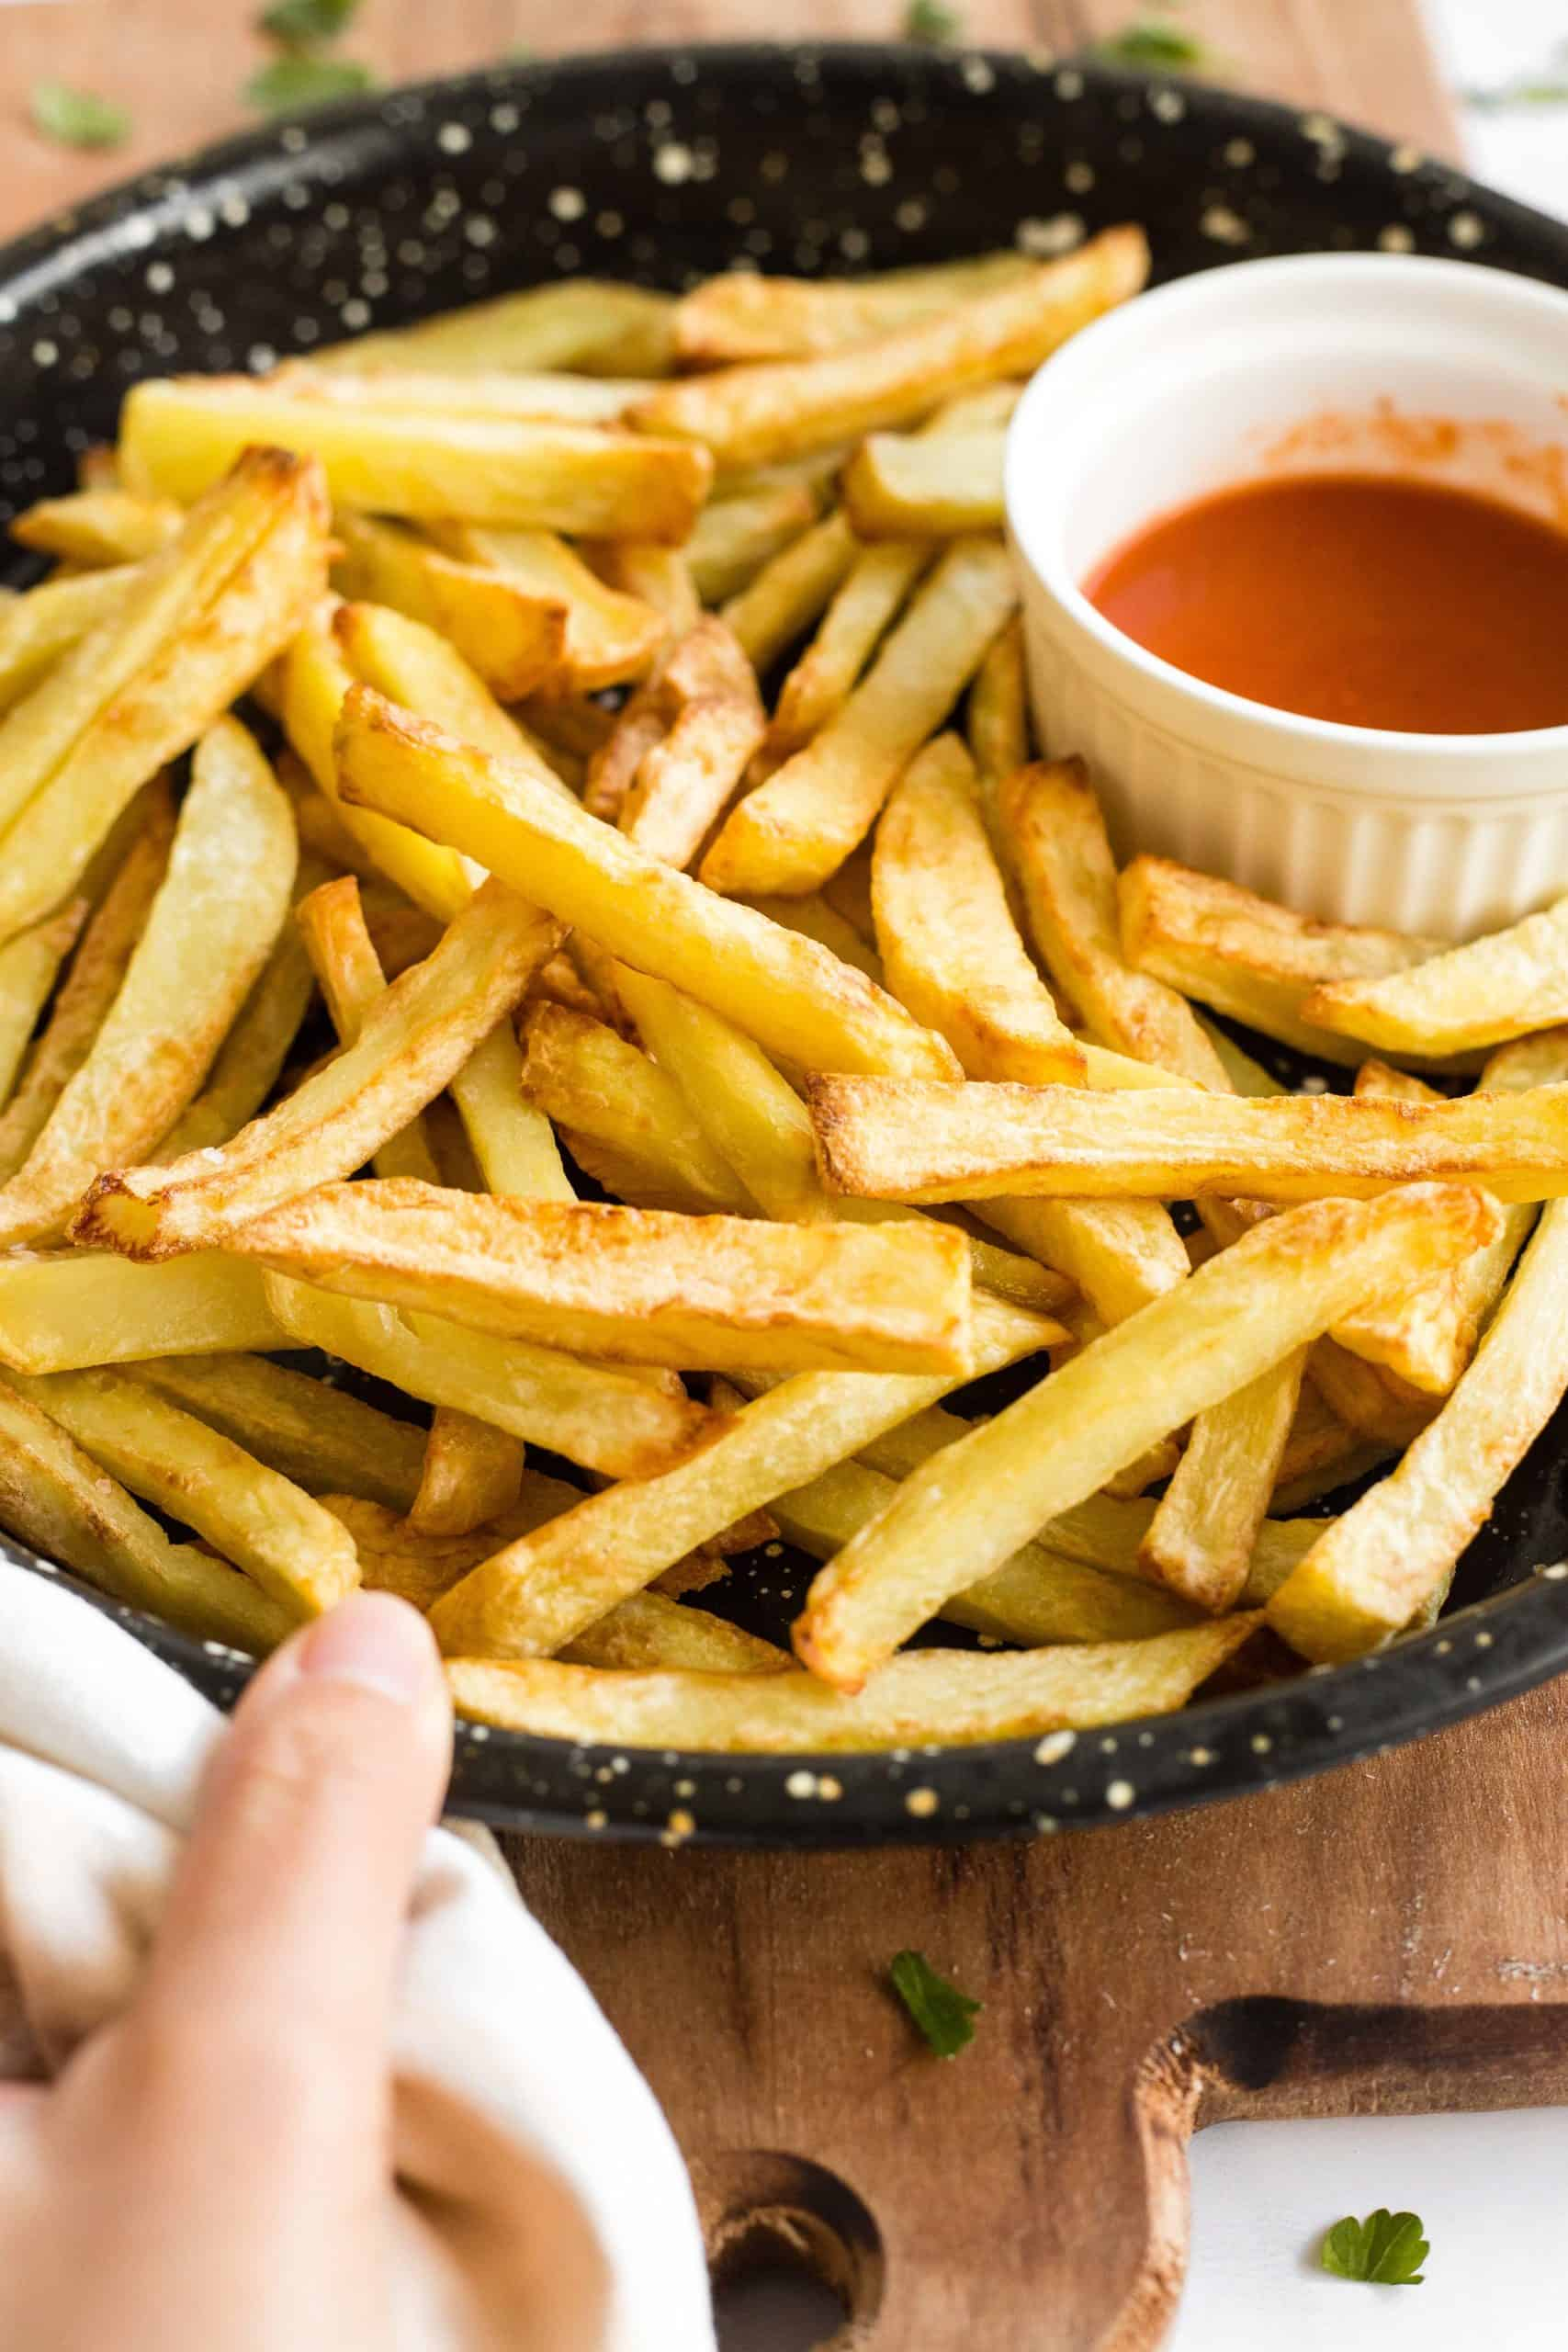 Hand holding a plate of crispy air fryer fries.